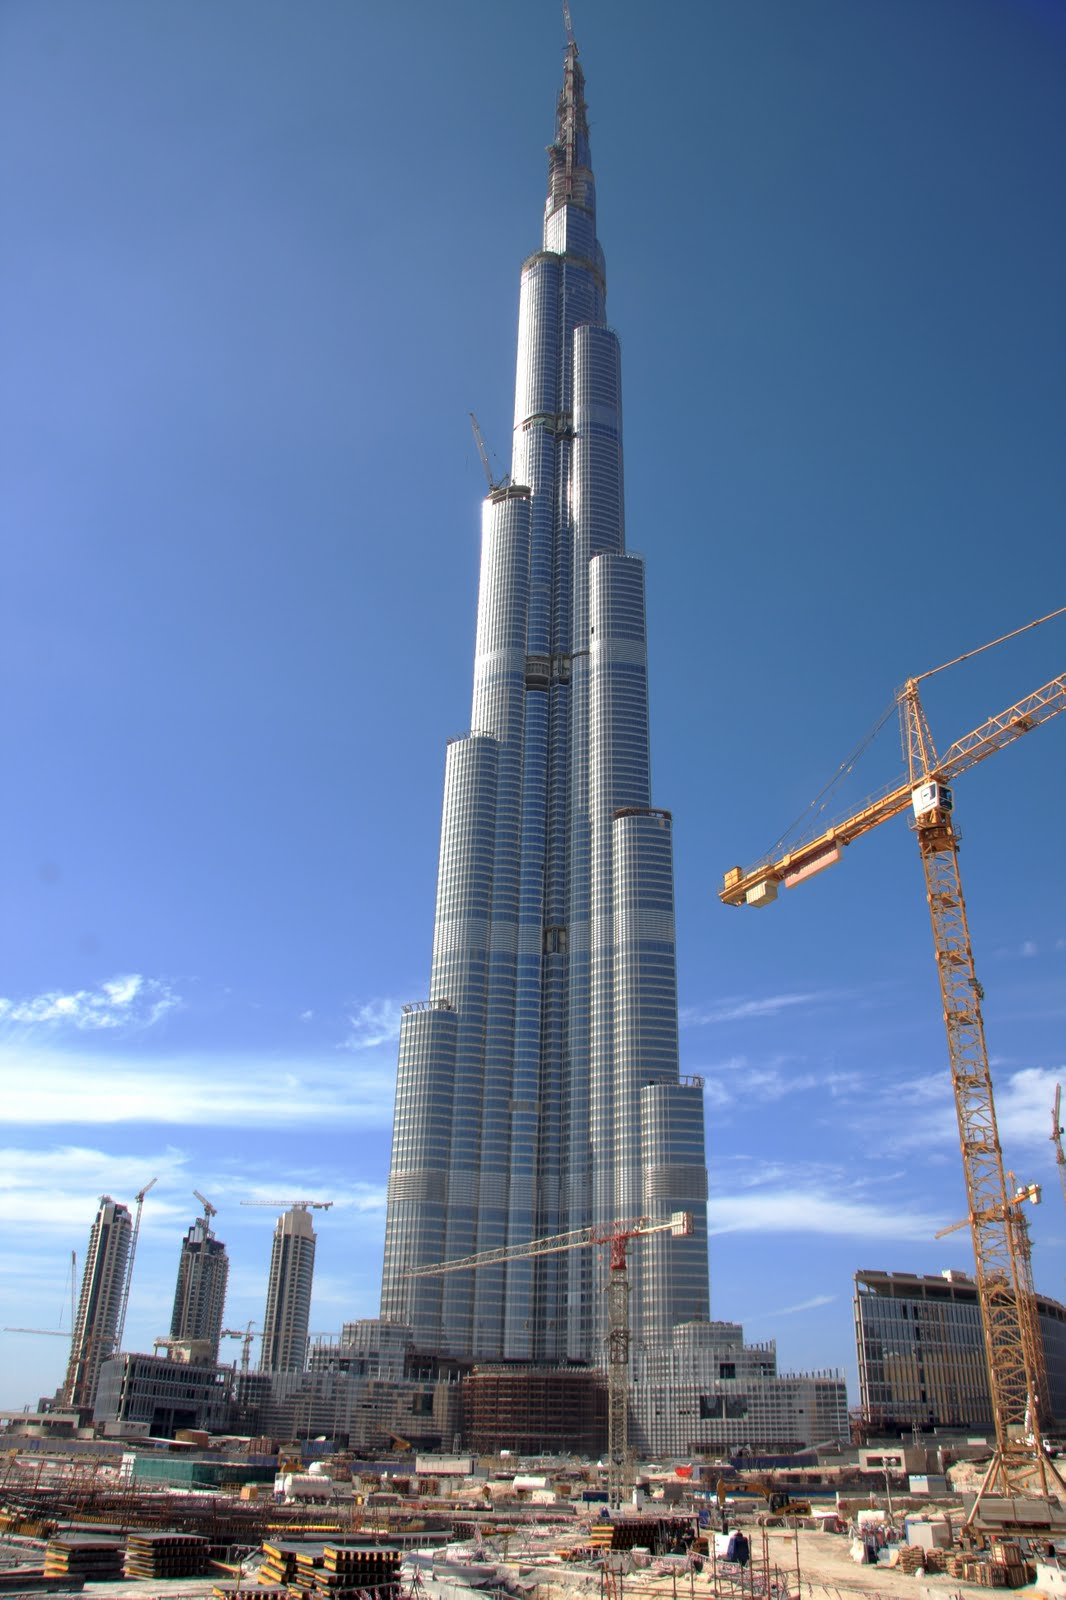 All world visits burj dubai tower Dubai buildings